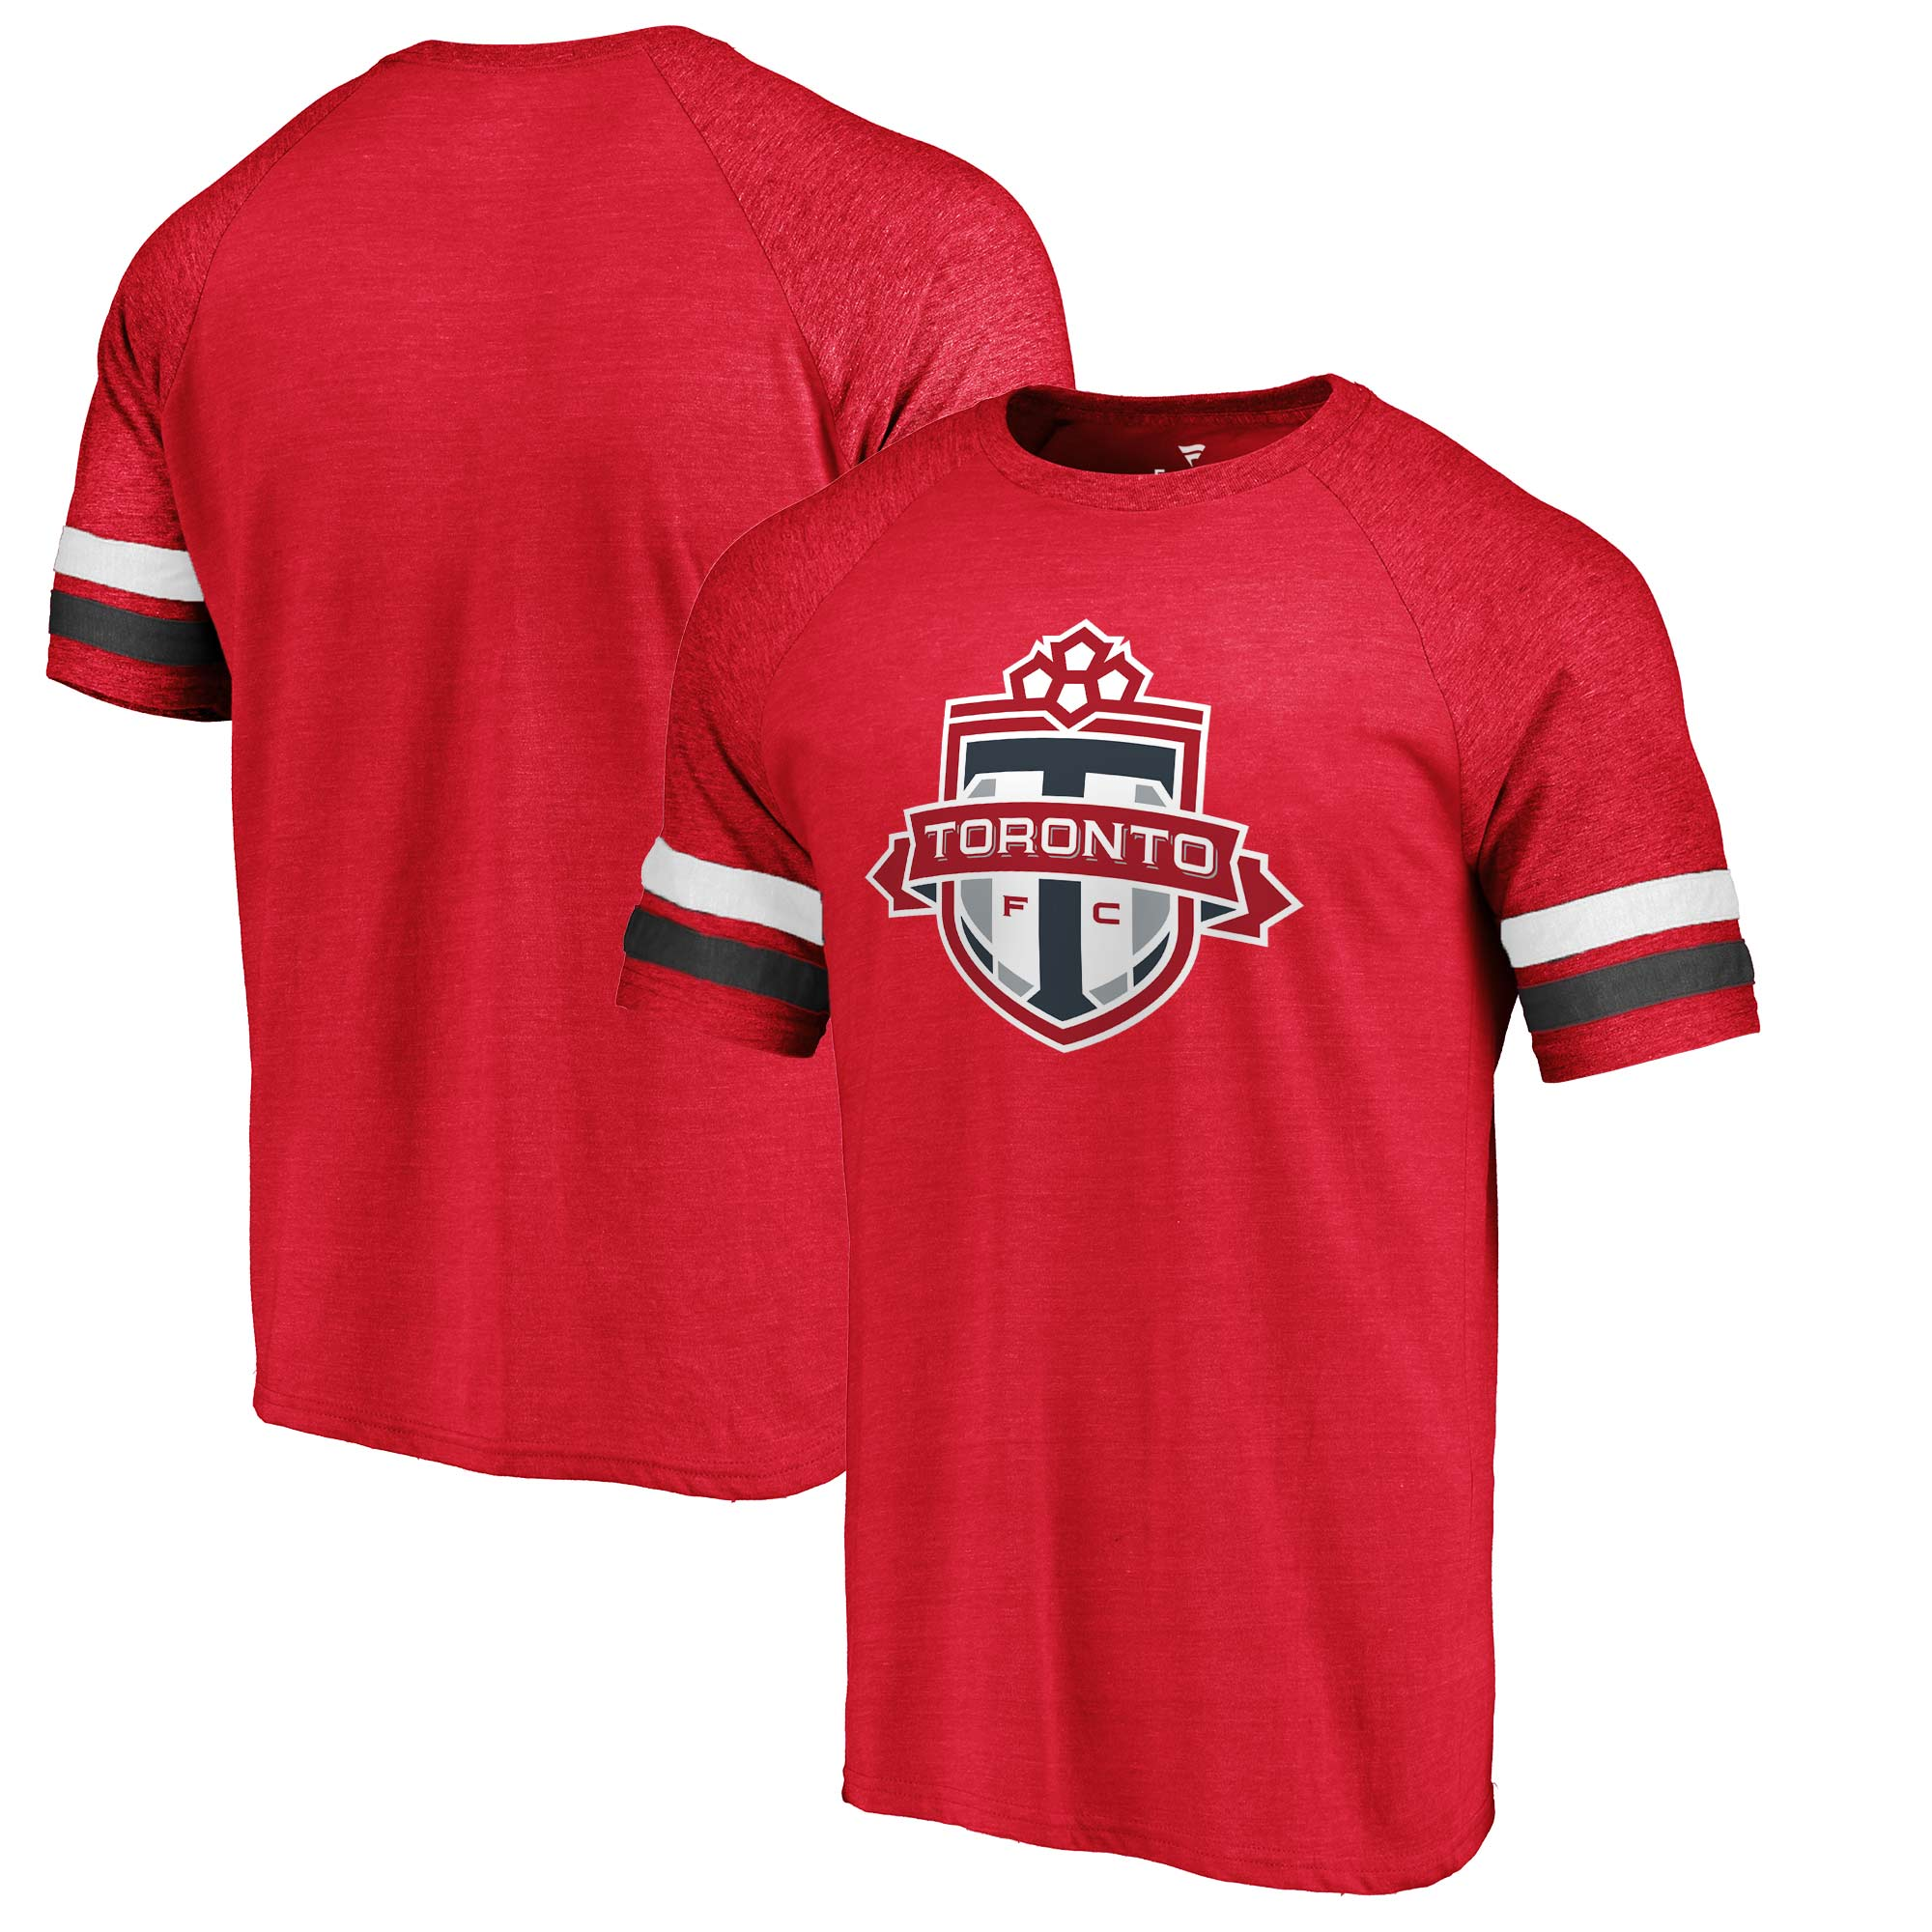 Toronto FC Fanatics Branded Tri-Blend Raglan T-Shirt - Red